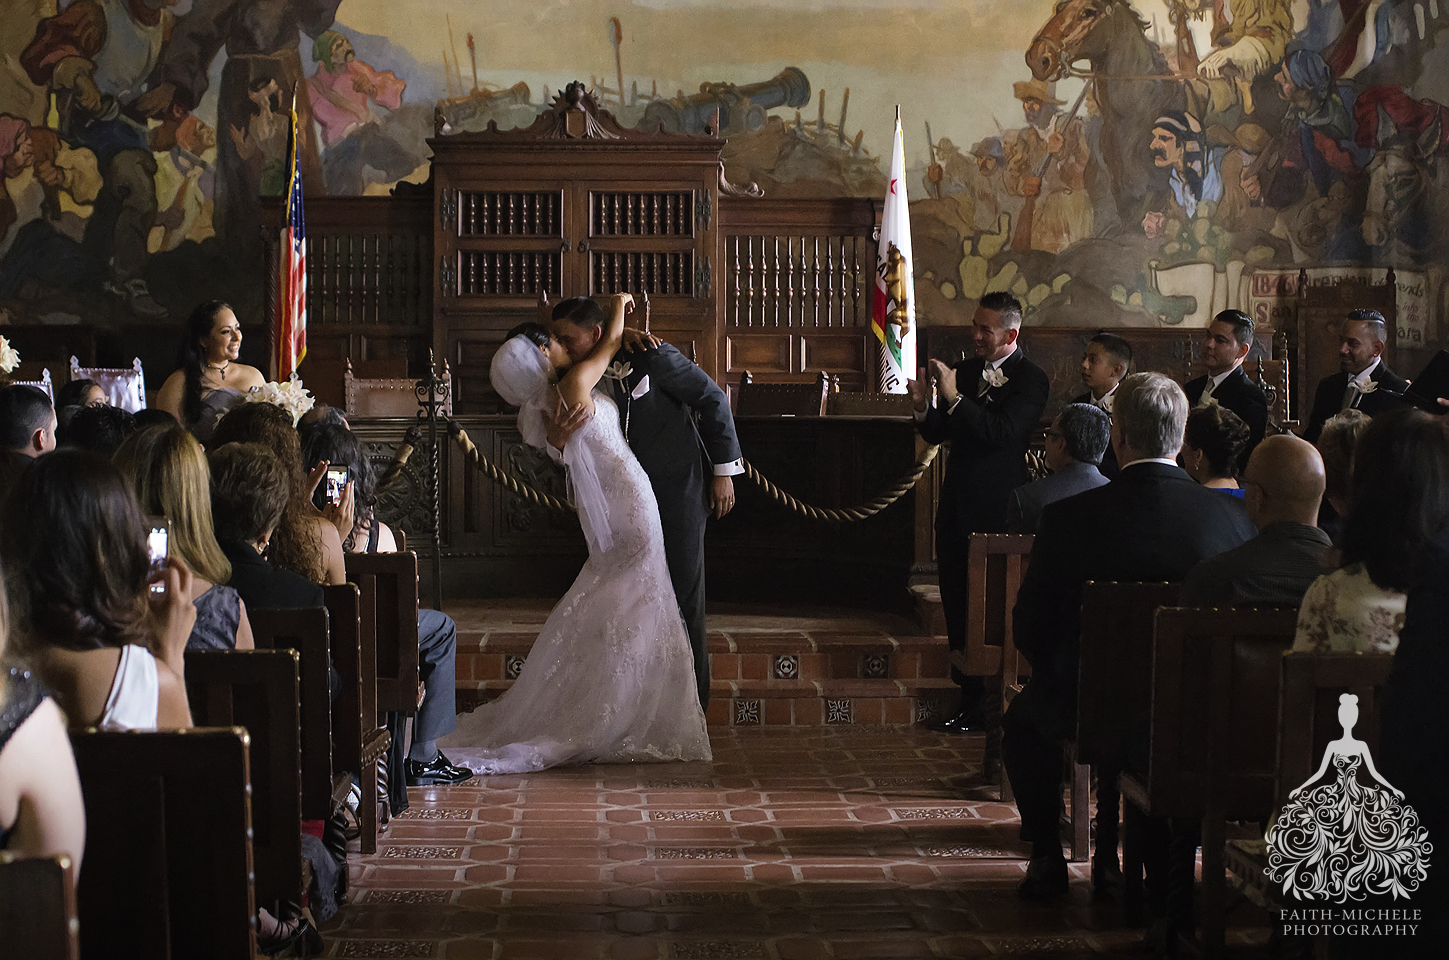 Santa barbara courthouse wedding for Mural room santa barbara courthouse